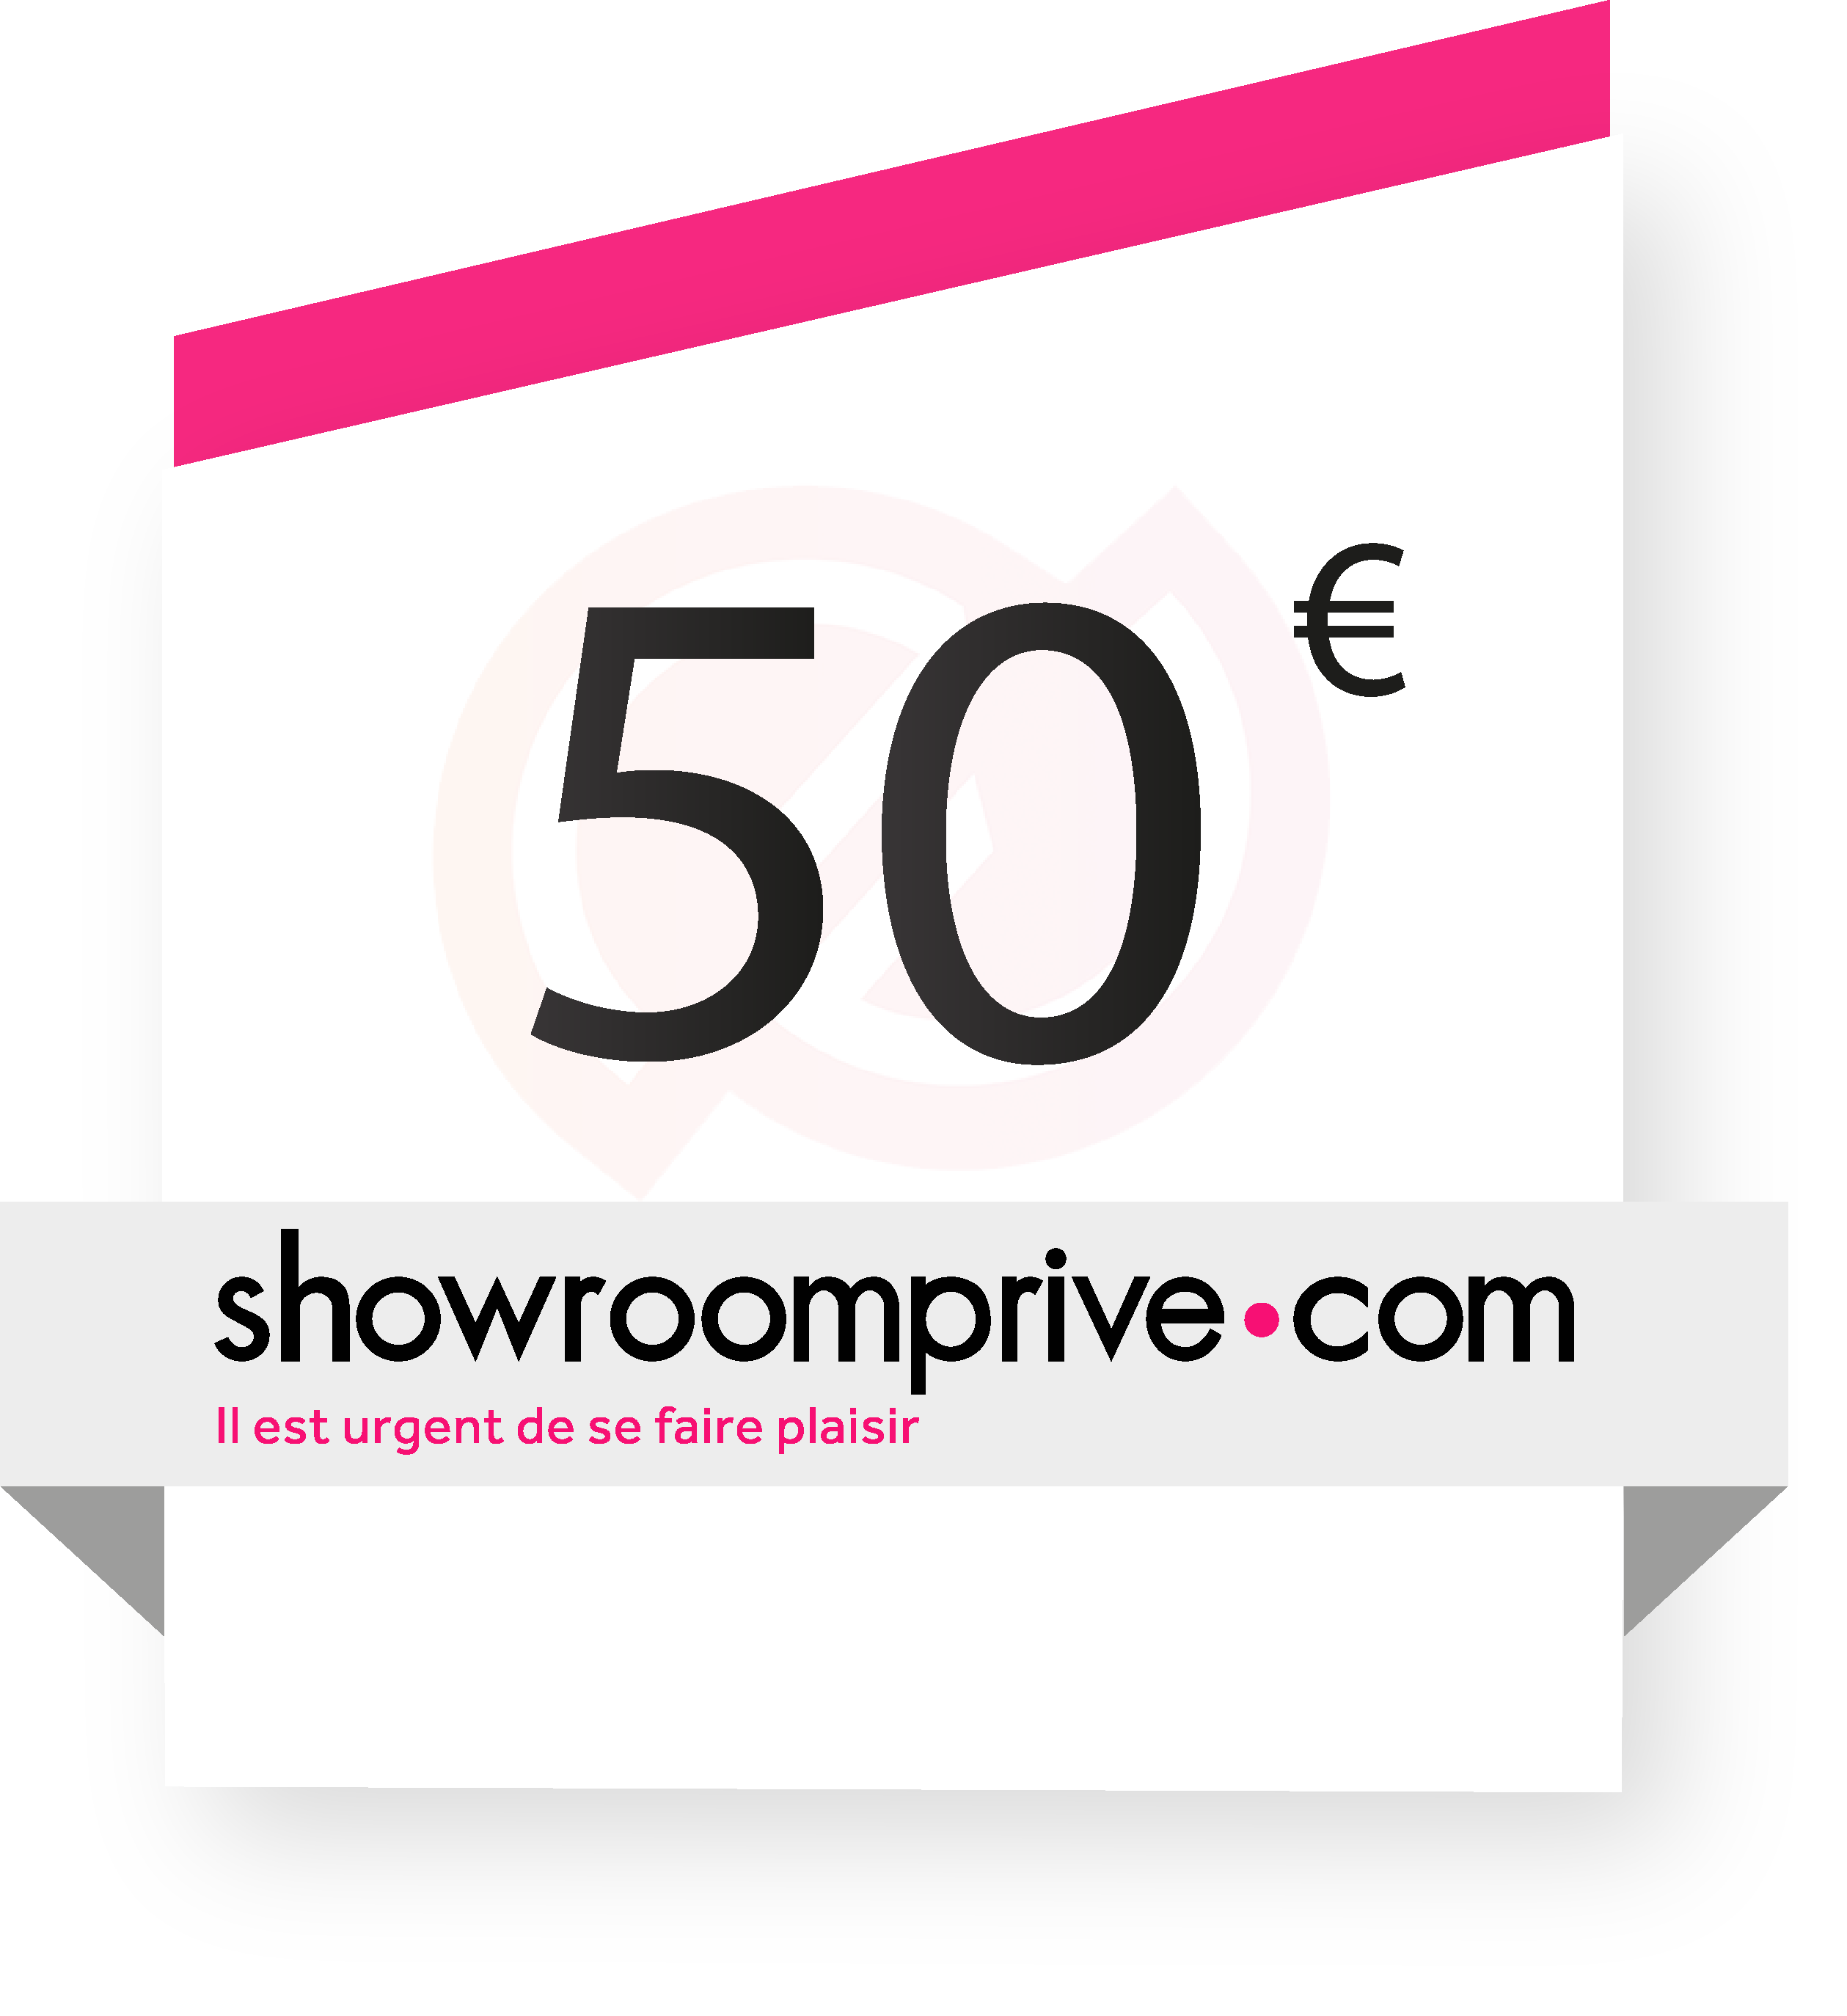 coupon Showroomprivé.com 50€